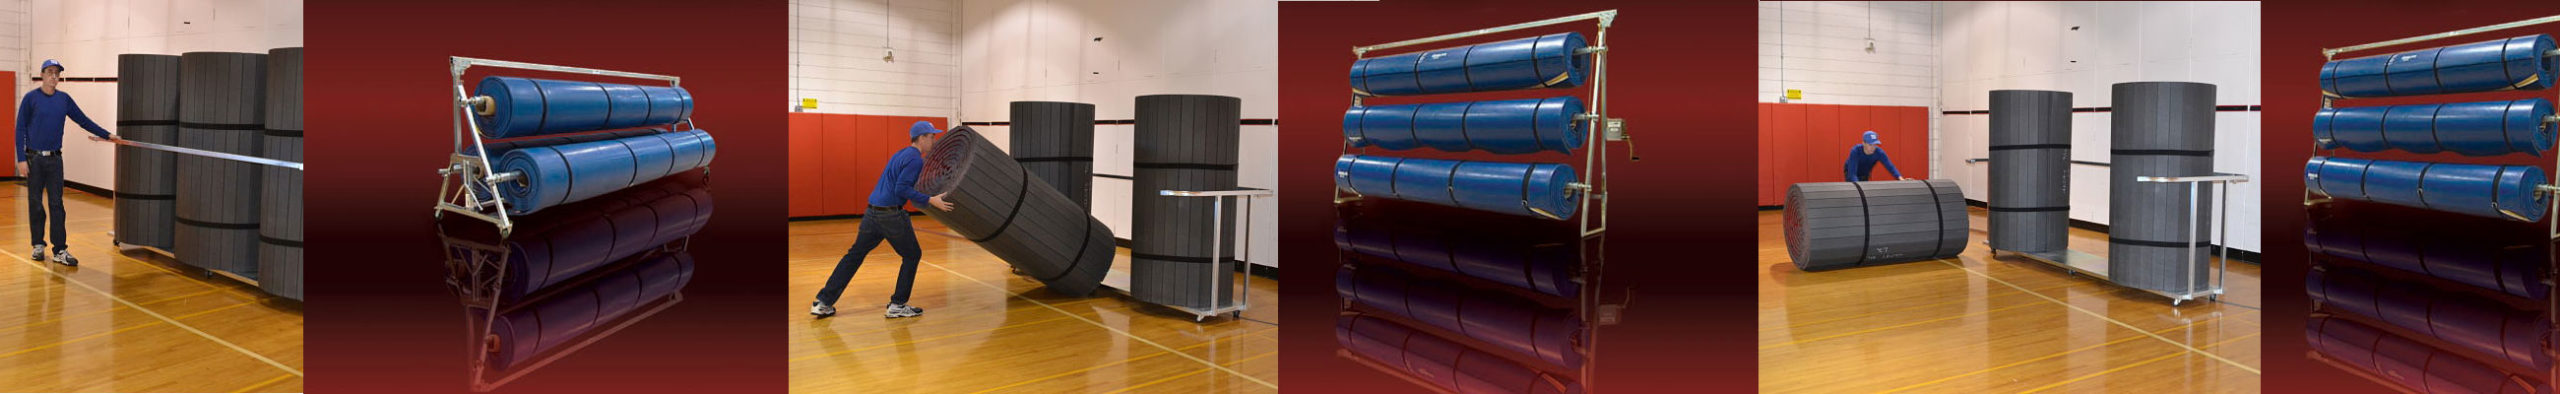 Mat Baskets and Mat Racks by TW Promotions, Inc.